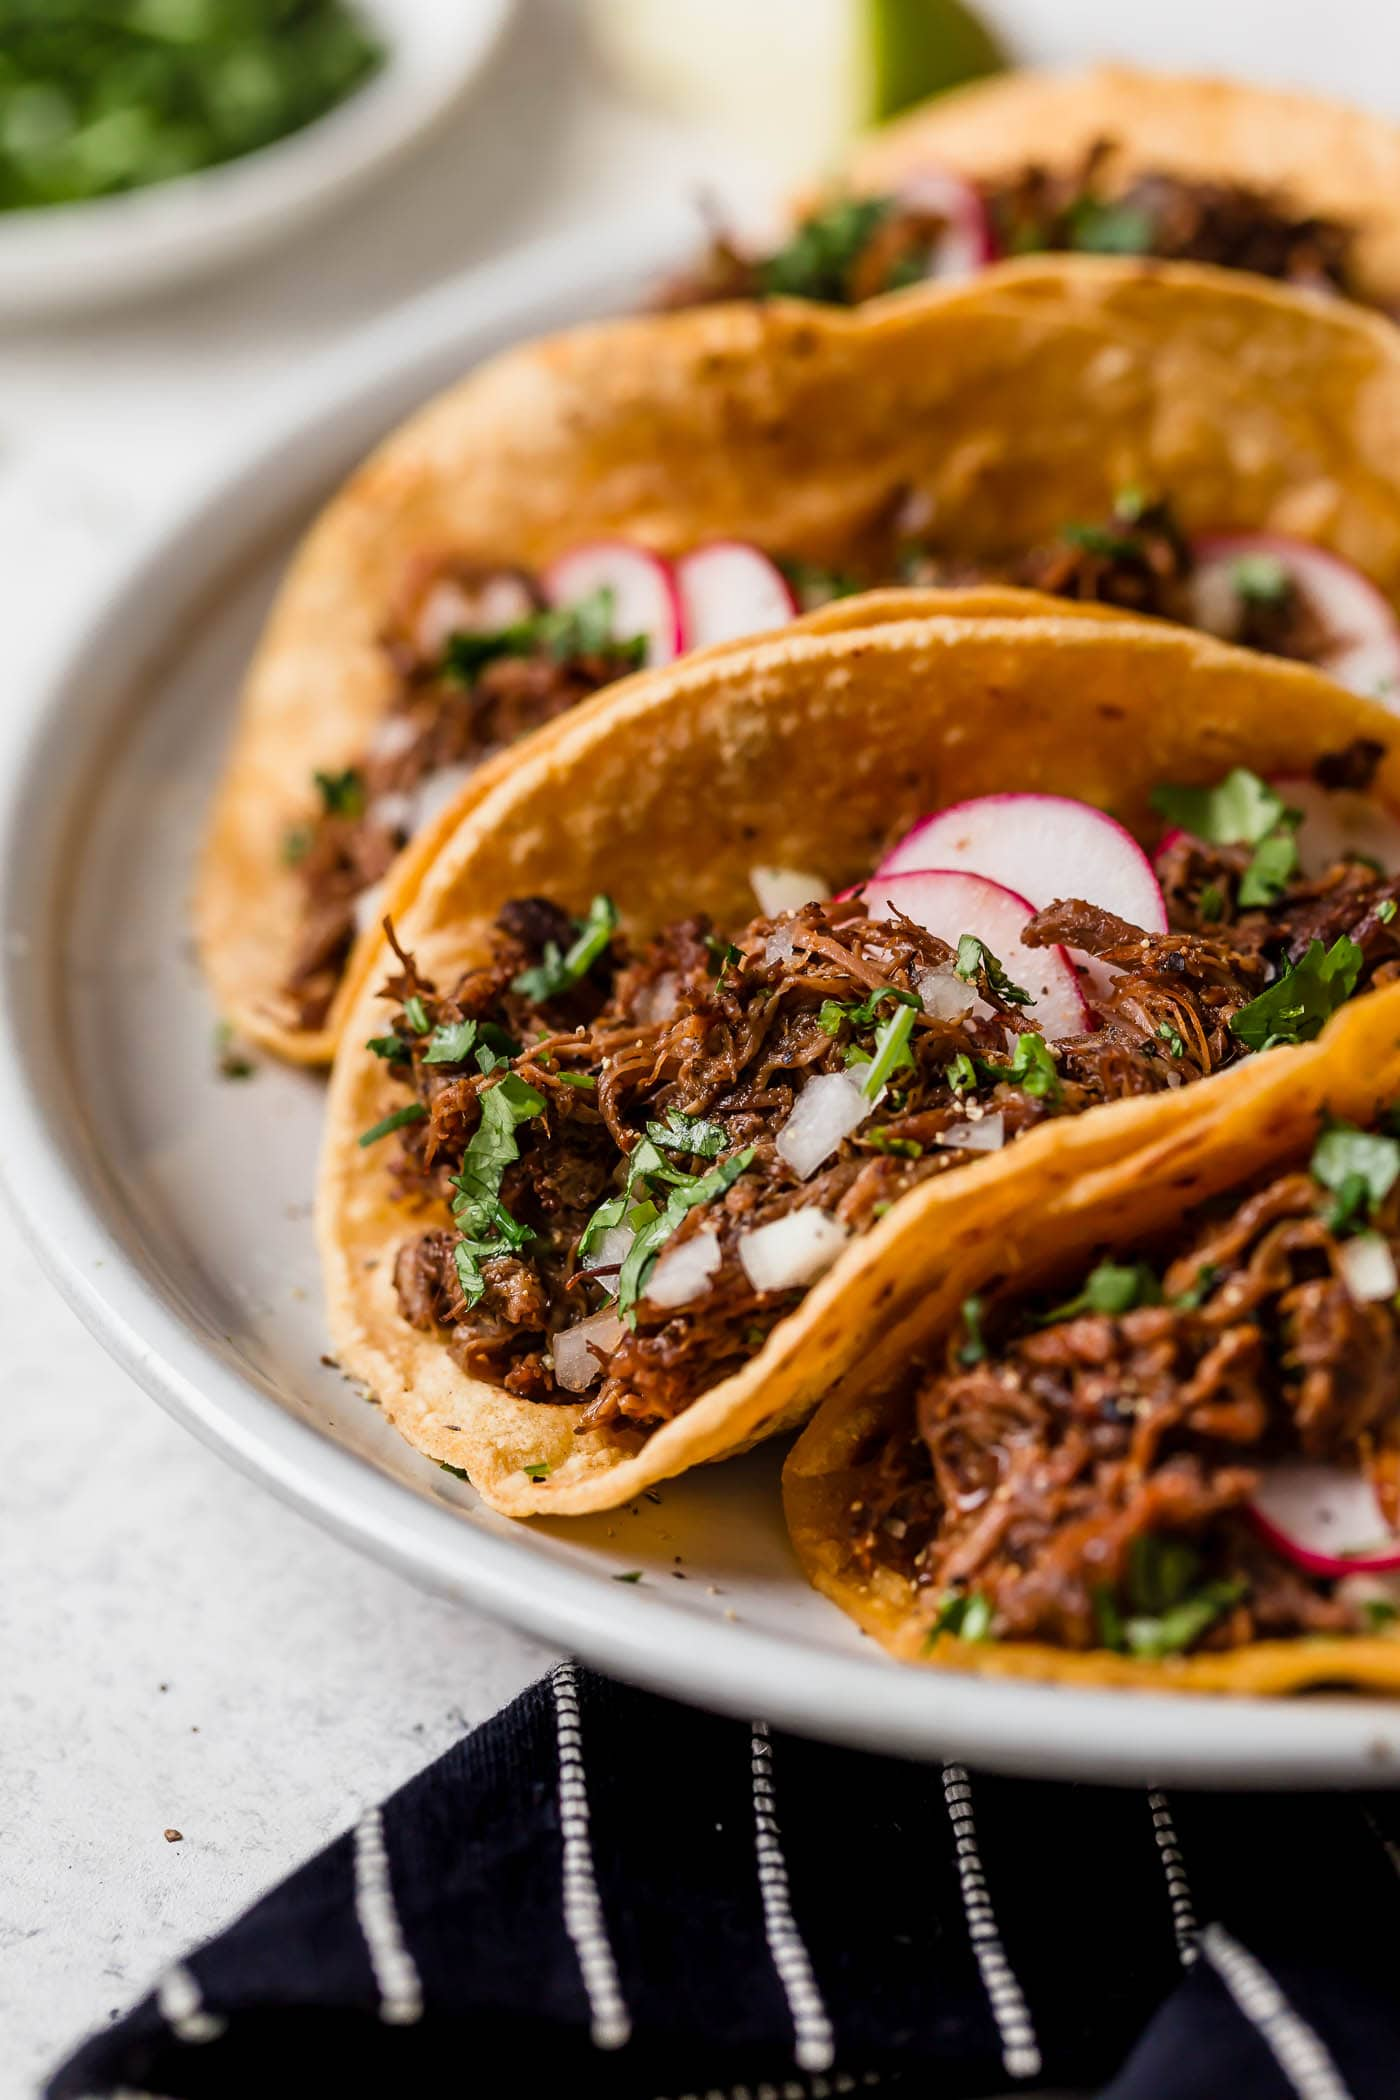 Barbacoa beef layered into tacos